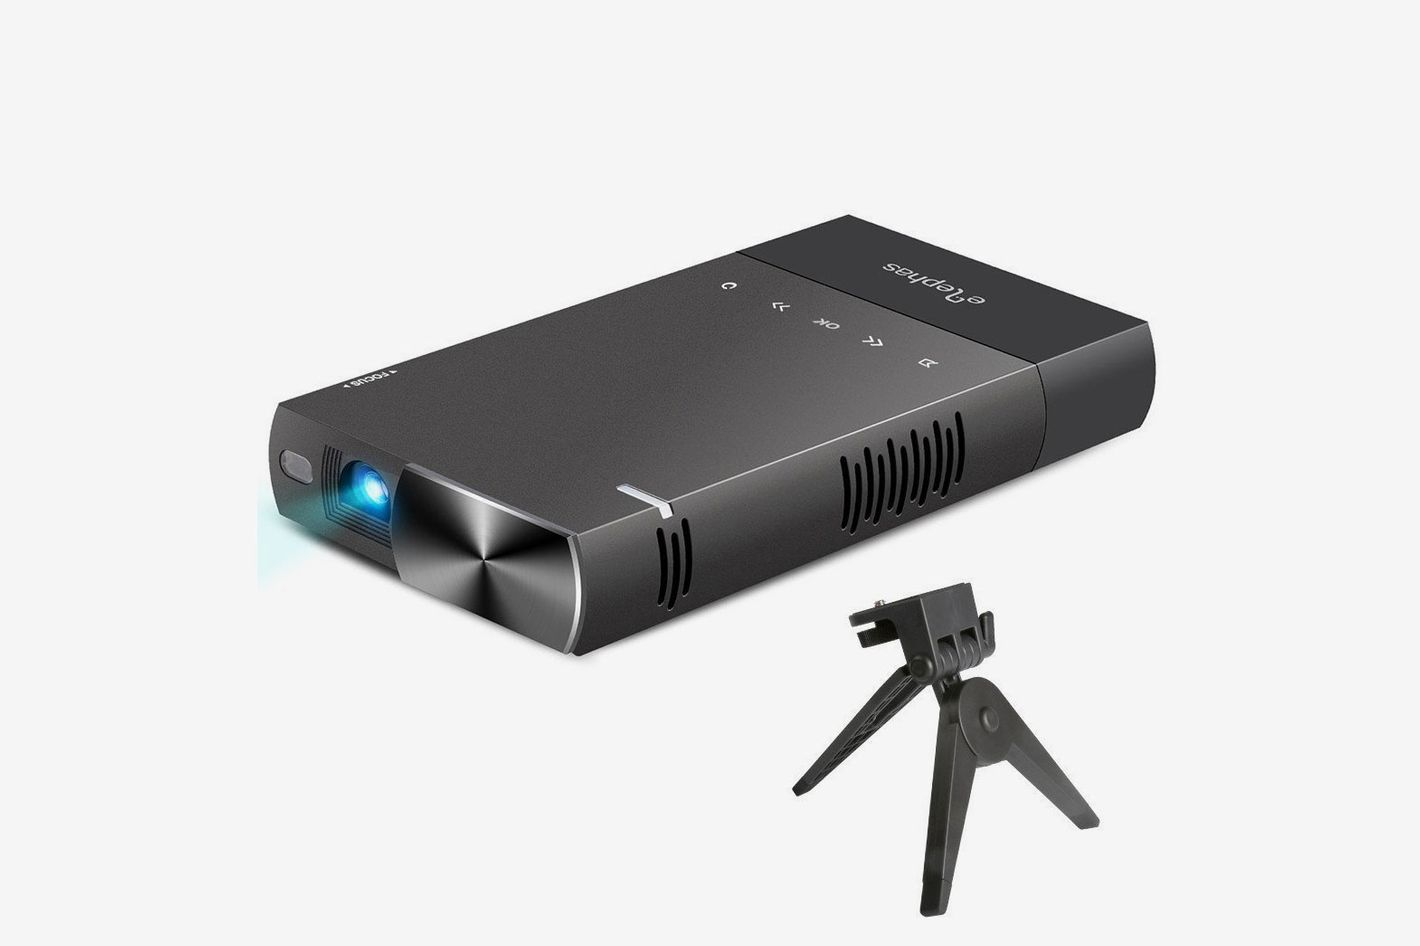 Elephas High Brightness Pico Video iPhone DLP Mini Projector